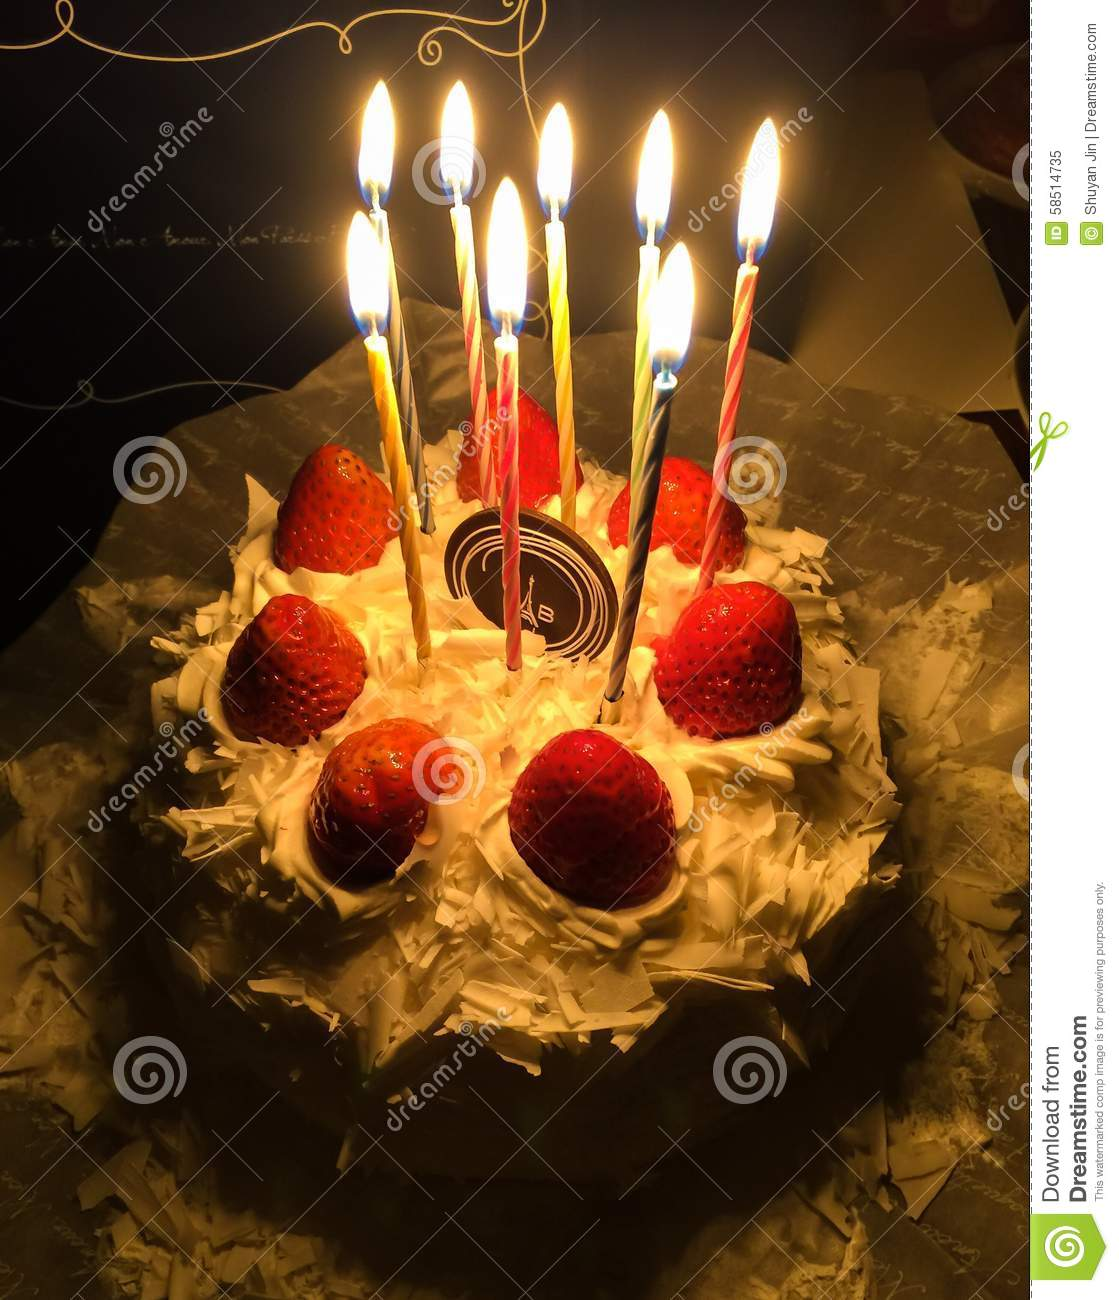 Birthday Cake Stock Image Of Candle Celebrate